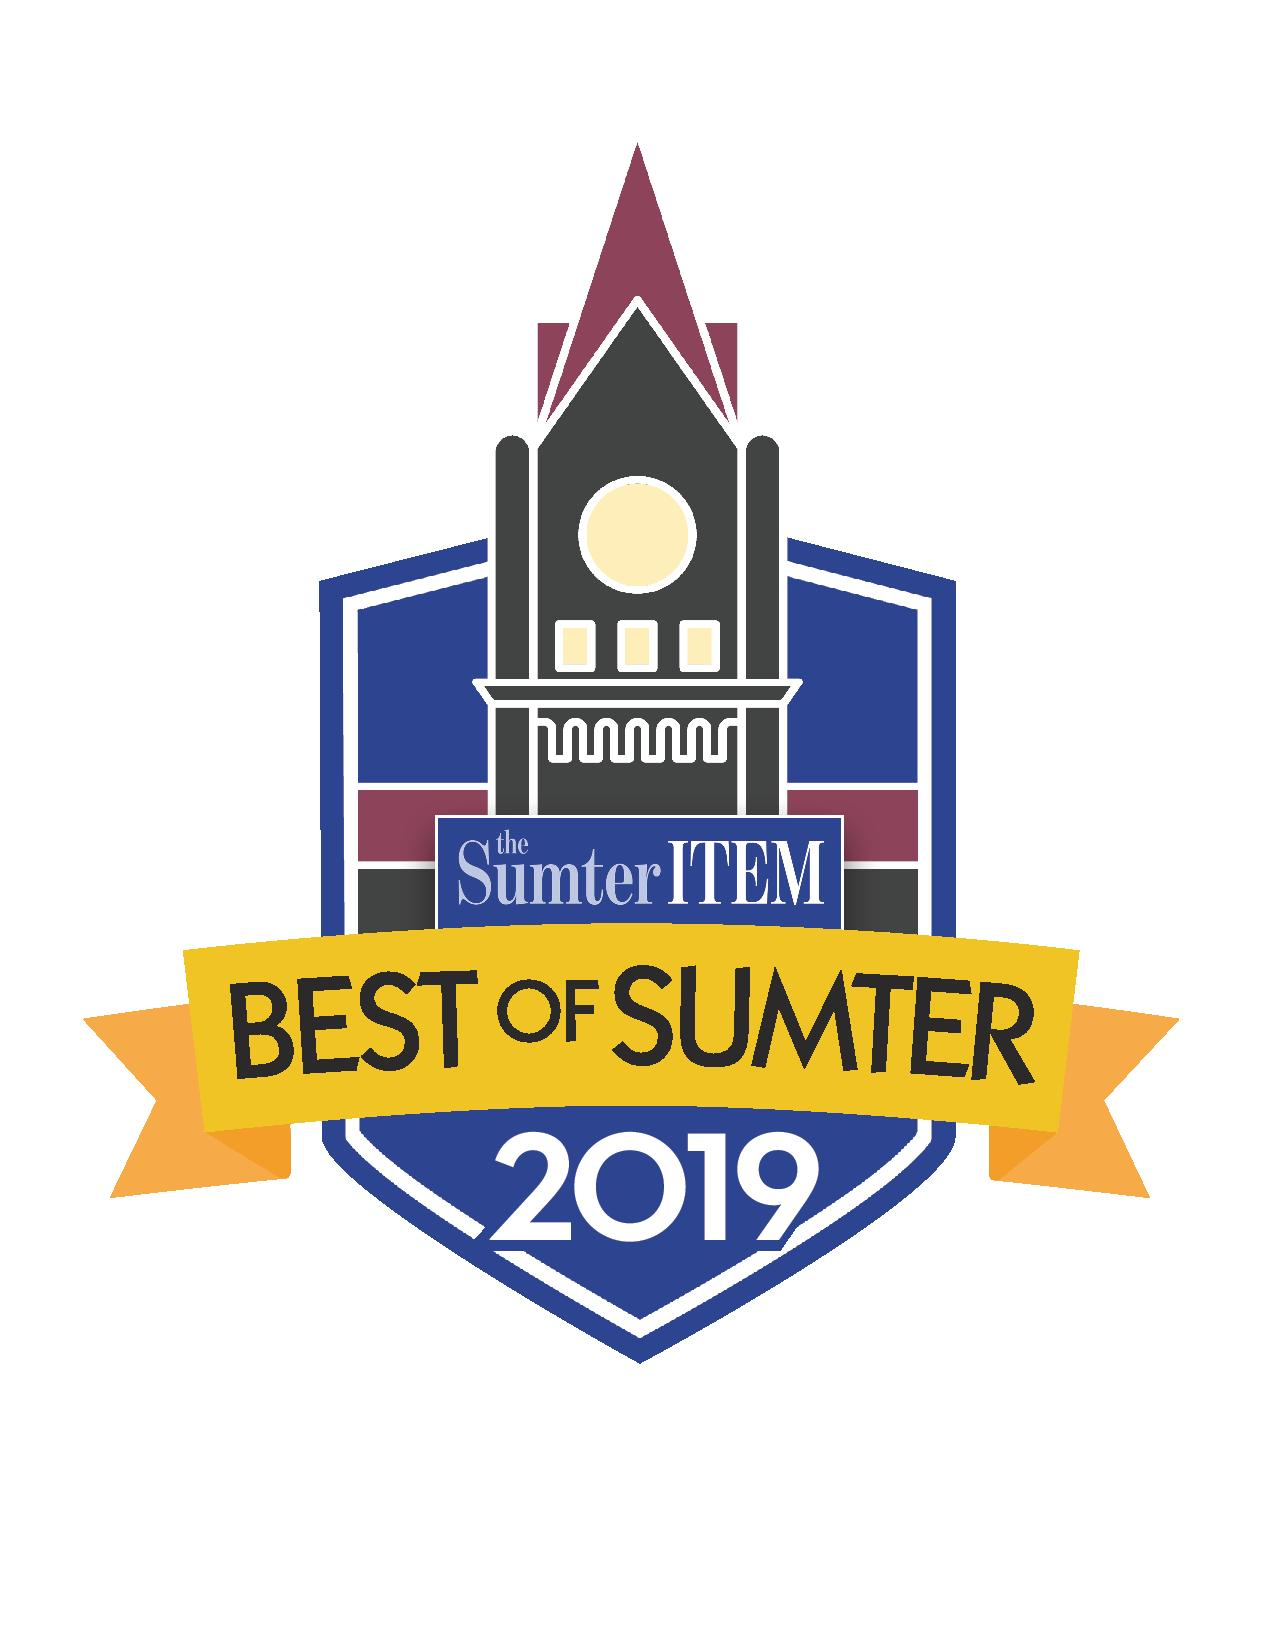 Best of Sumter 2019